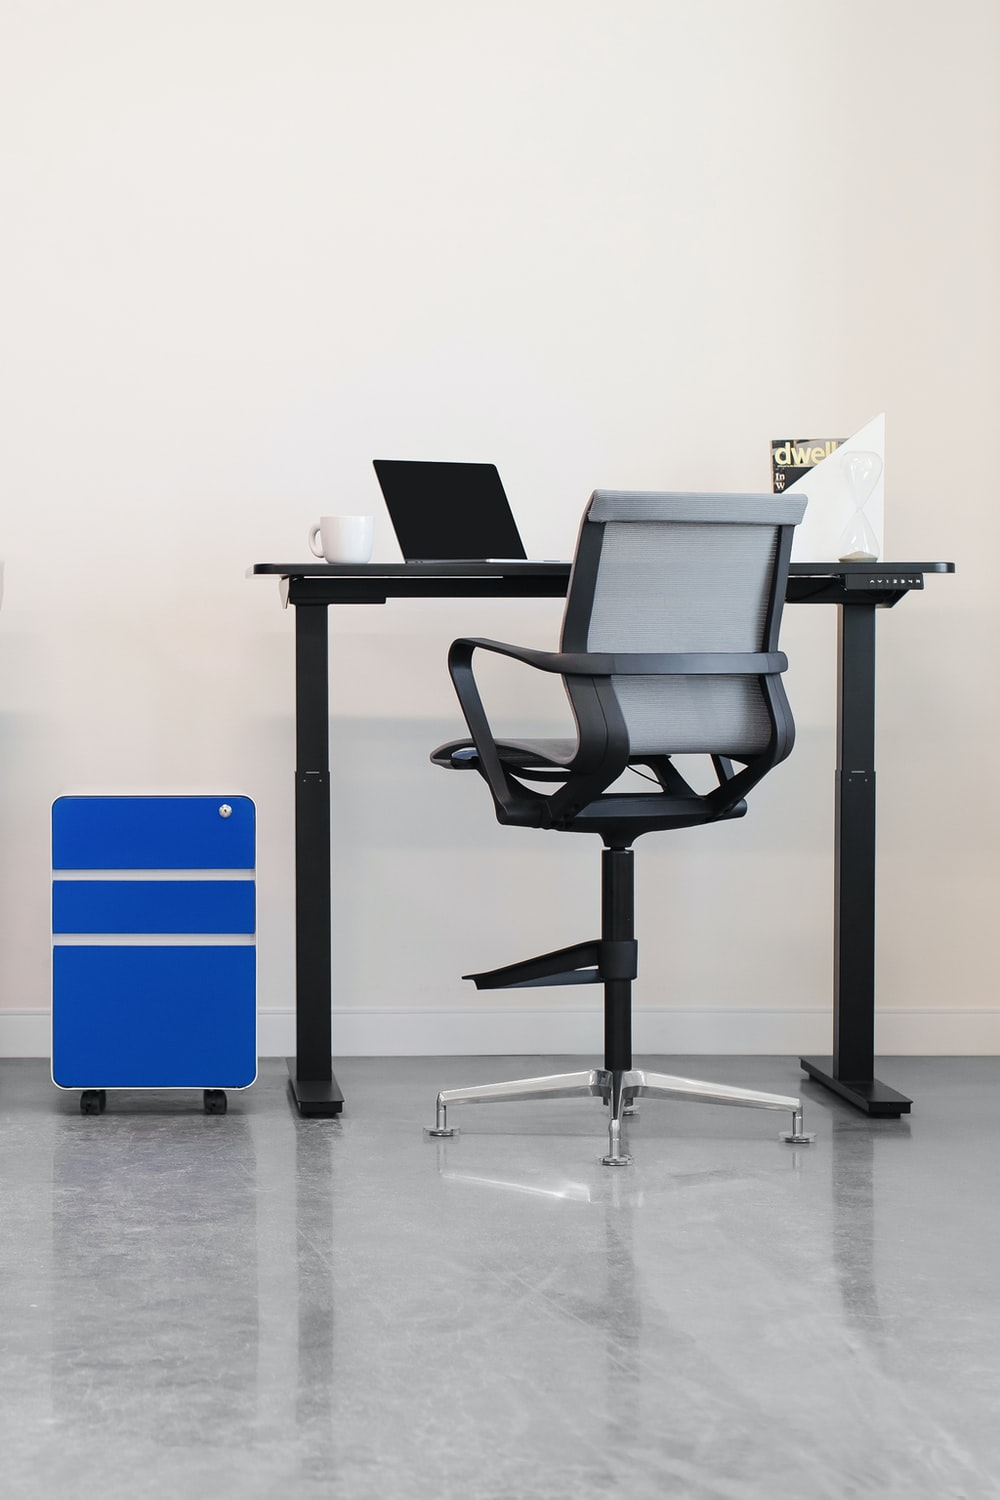 black and silver laptop computer on black office rolling chair